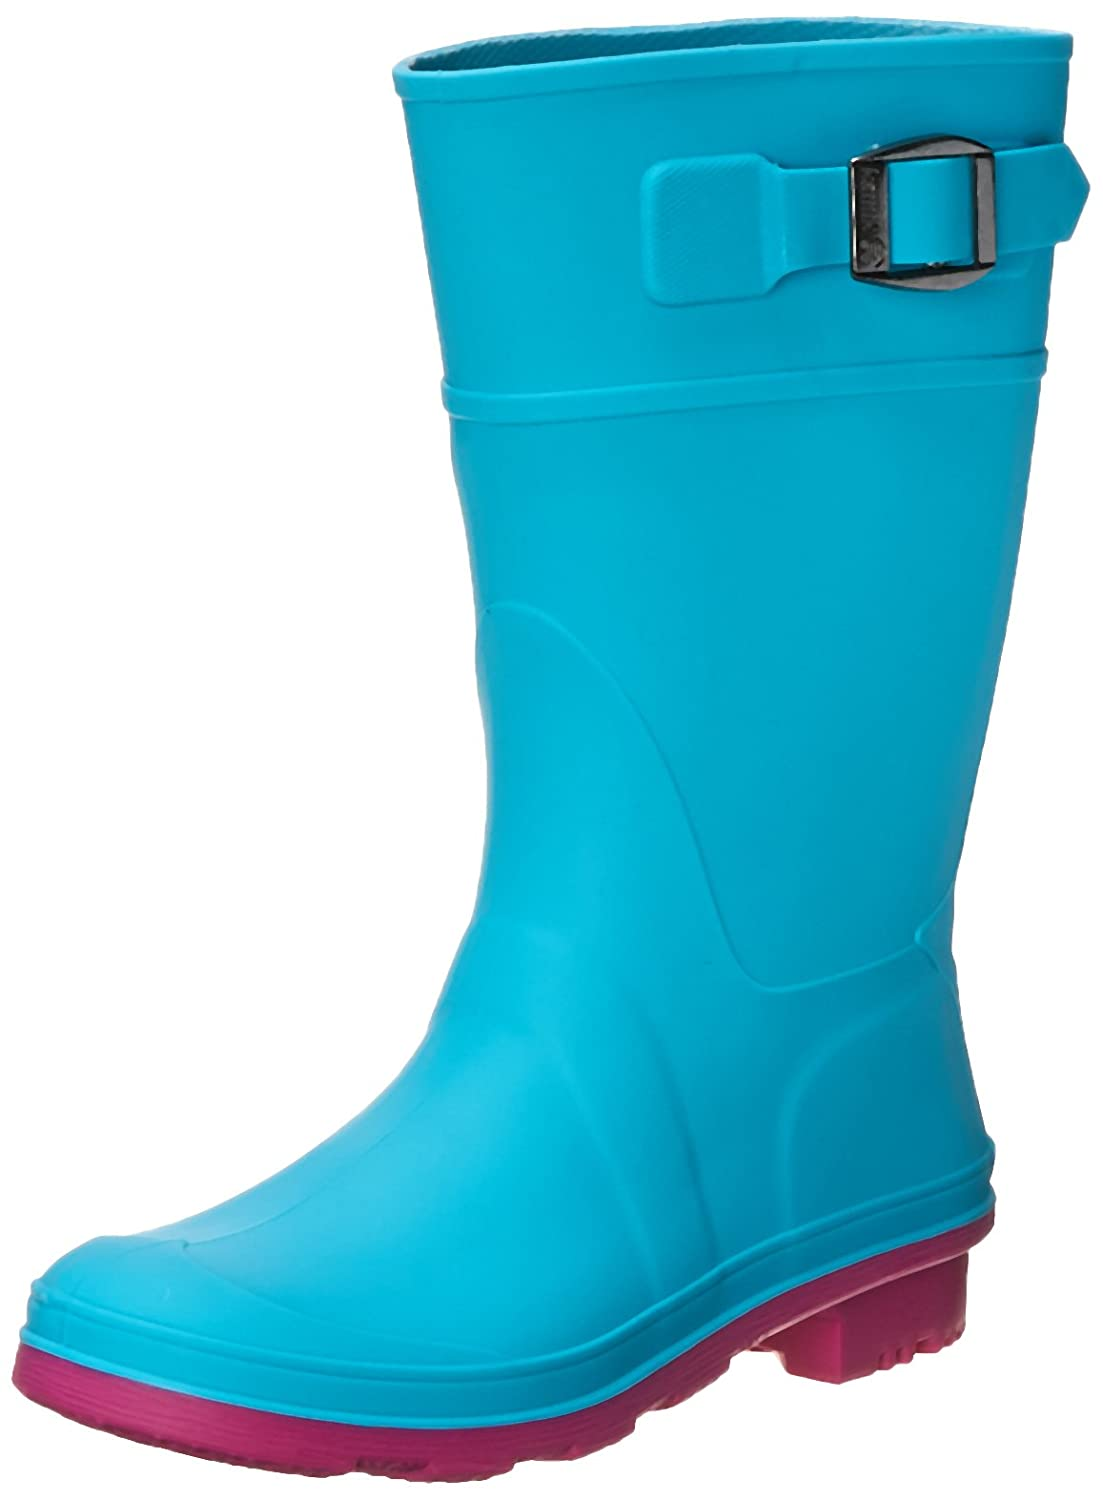 Kamik Raindrops Rain Boot (Little Kid/Big Kid)  нож складной ganzo g7142